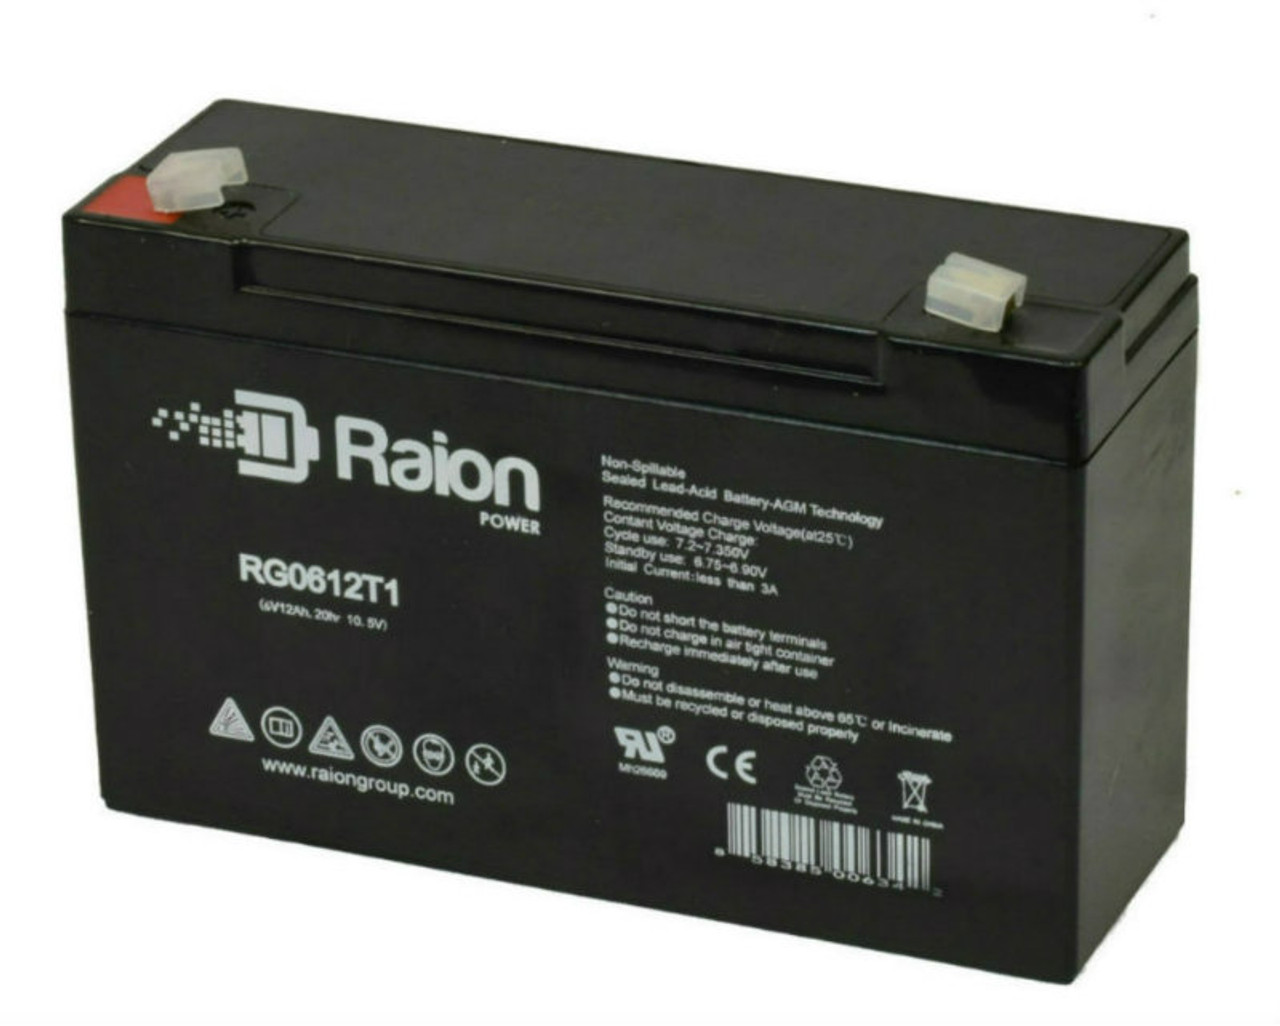 Raion Power RG06120T1 Replacement Battery Pack for Elan GC680 emergency light